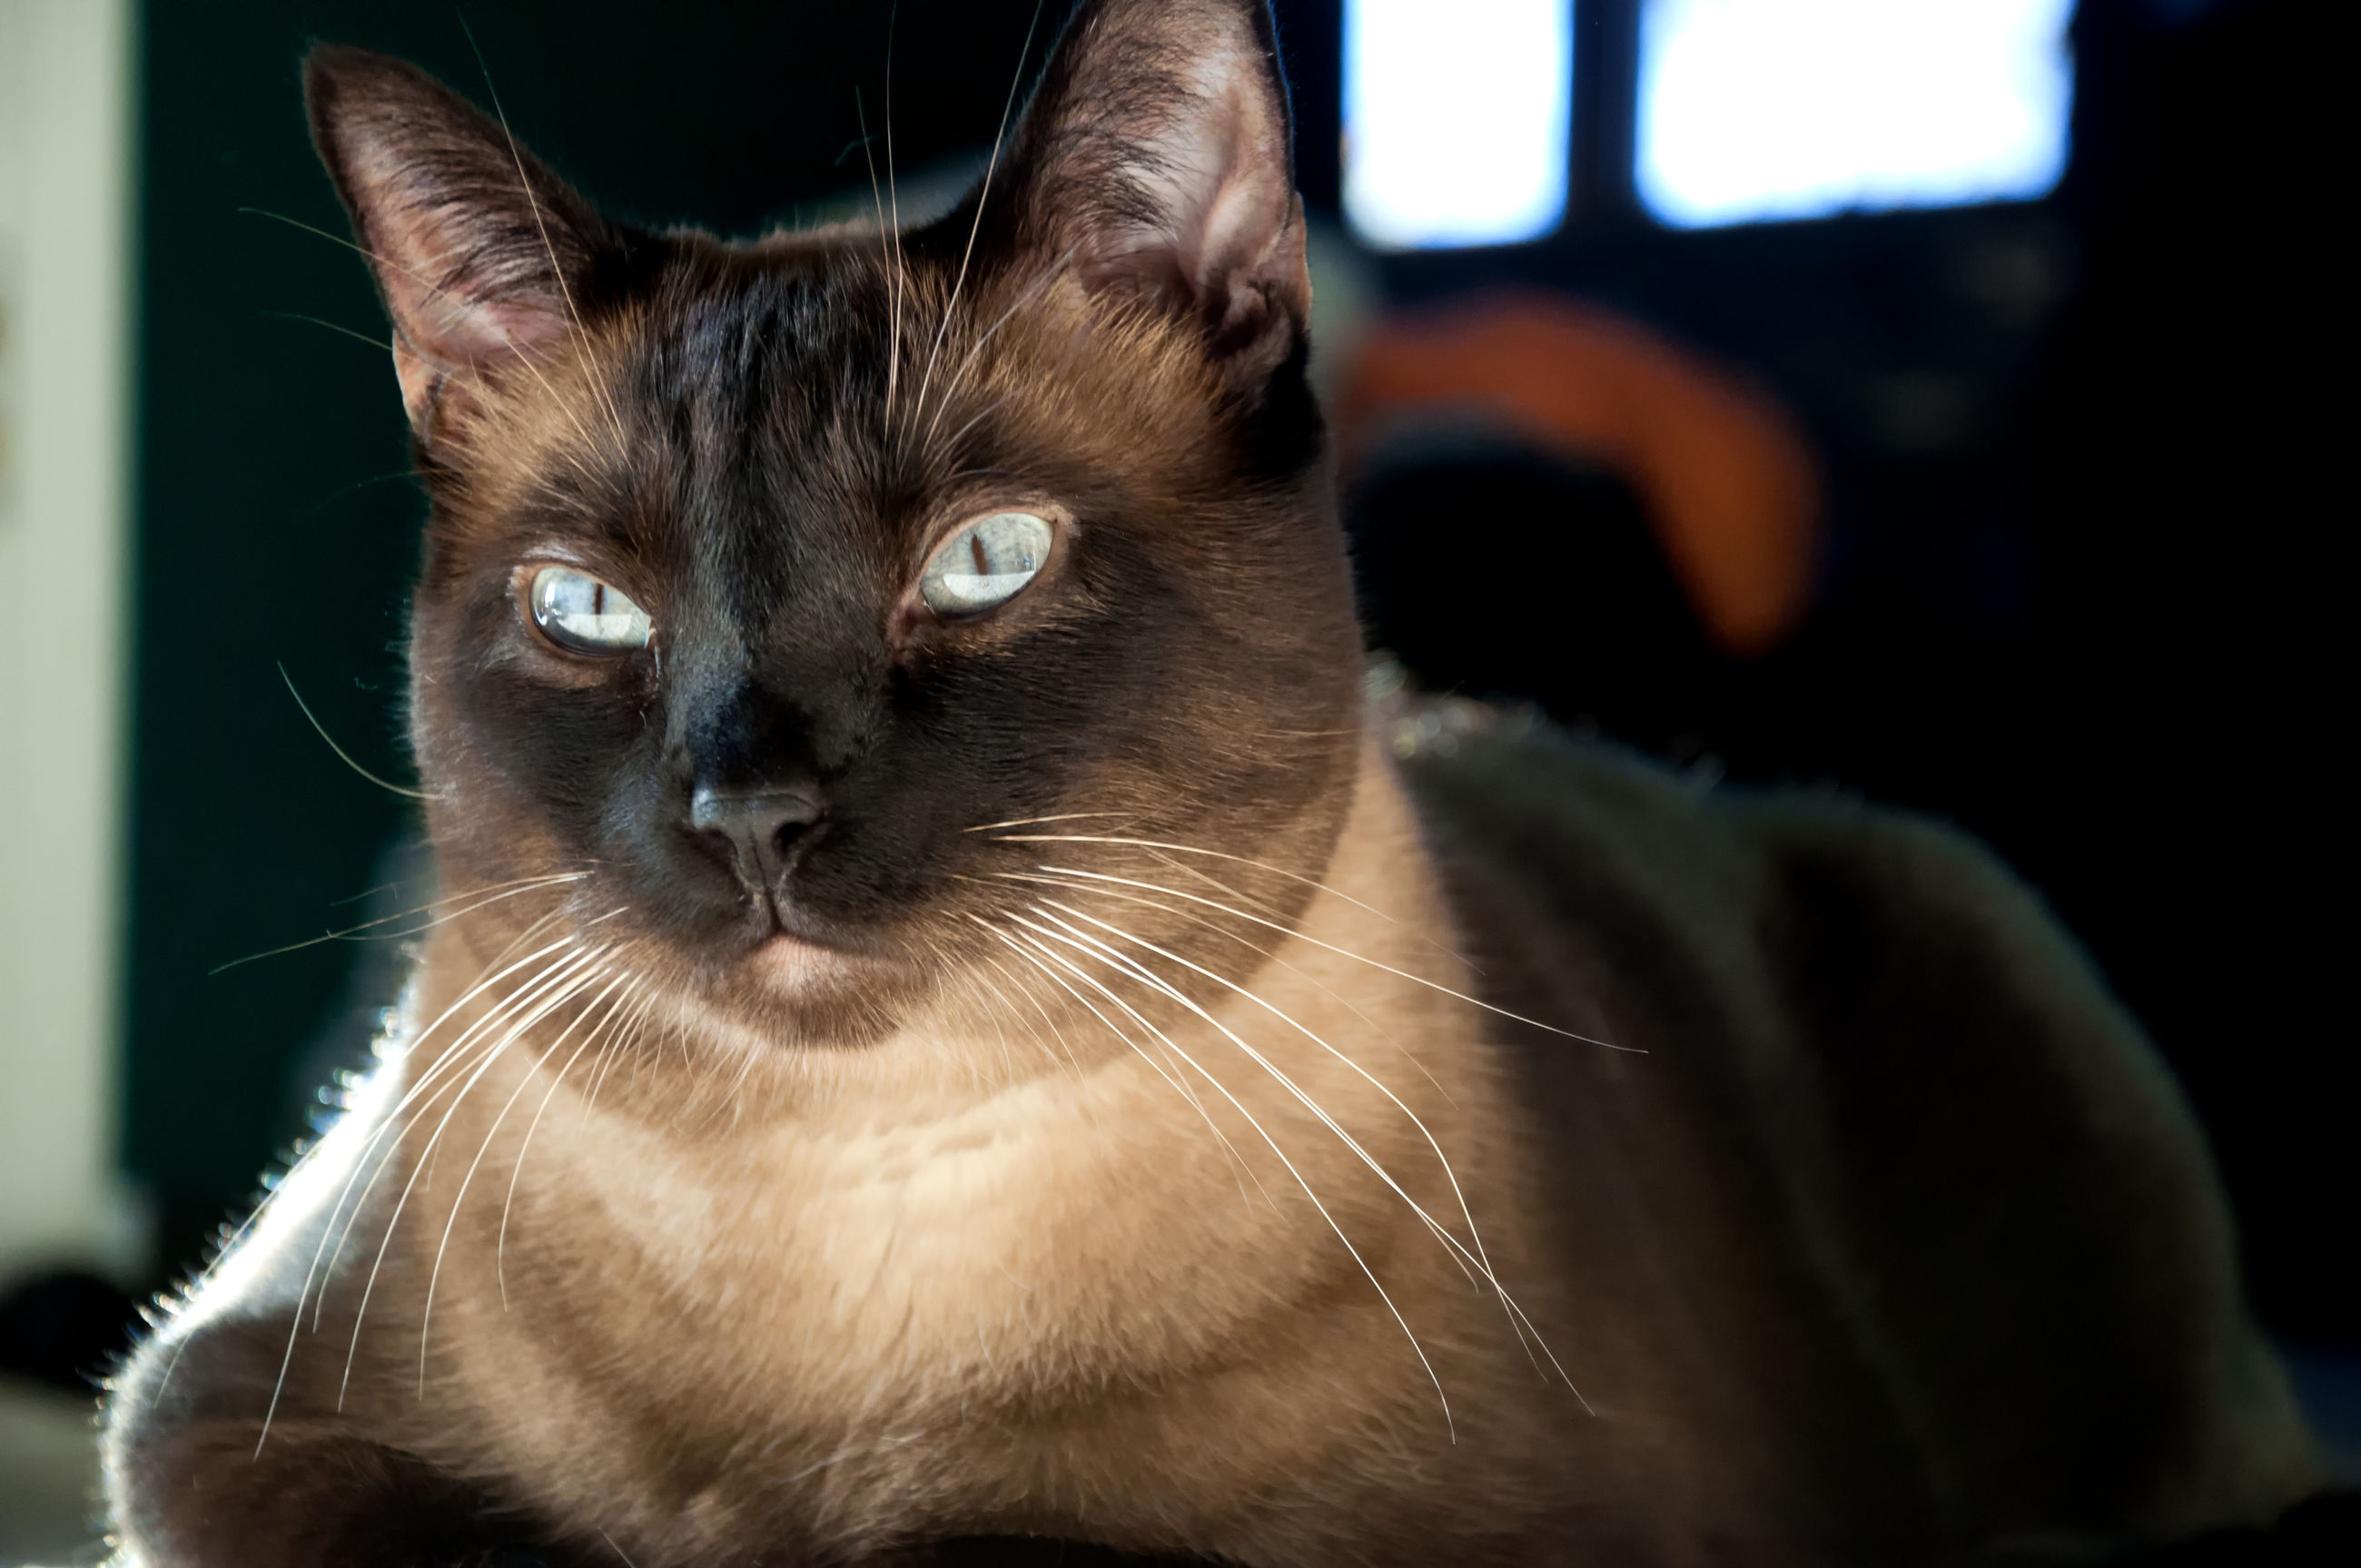 domestic, cat, mammal, pets, domestic animals, domestic cat, feline, animal themes, one animal, animal, vertebrate, whisker, close-up, no people, indoors, focus on foreground, relaxation, home interior, looking, animal body part, animal head, animal eye